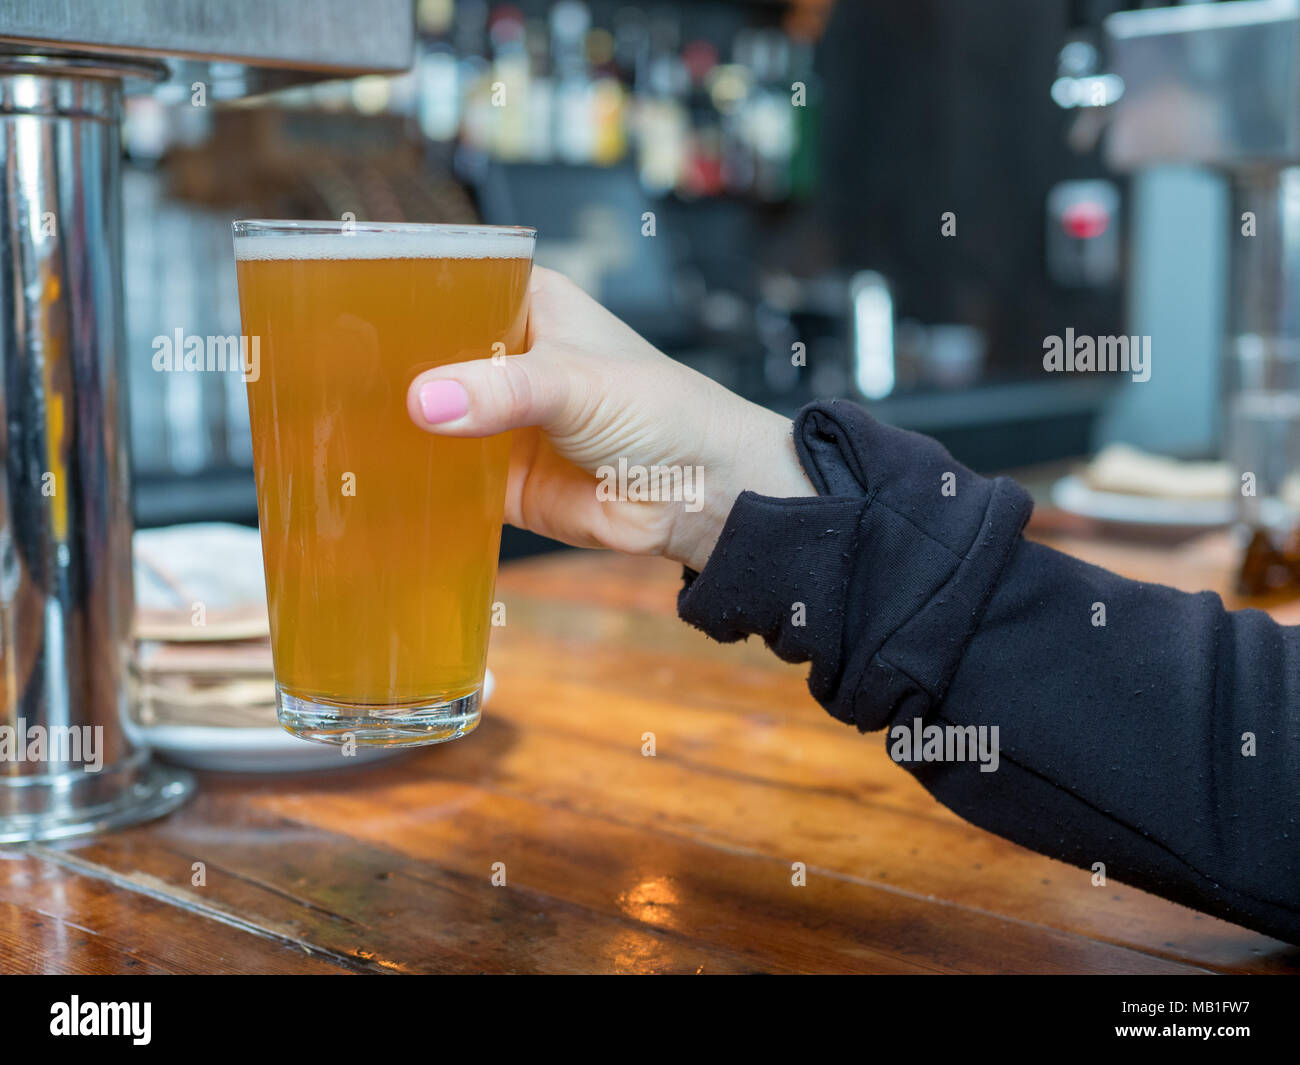 Woman lifting up pint glass of IPA beer in a bar in a brewery - Stock Image